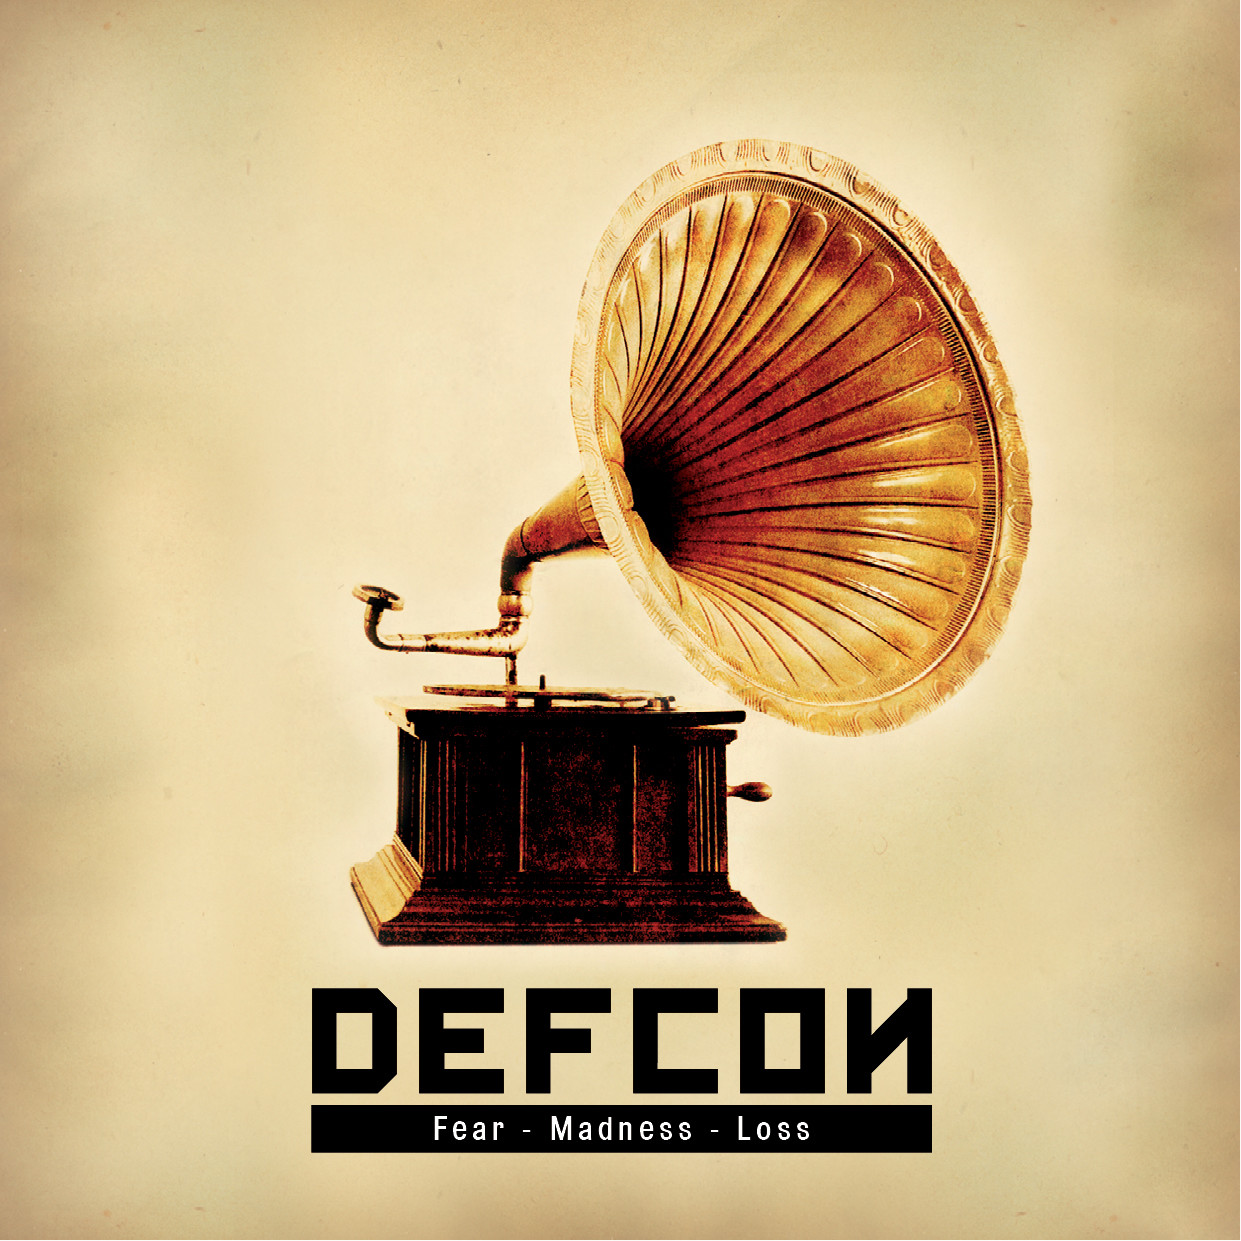 DEFCON Soundtrack screenshot